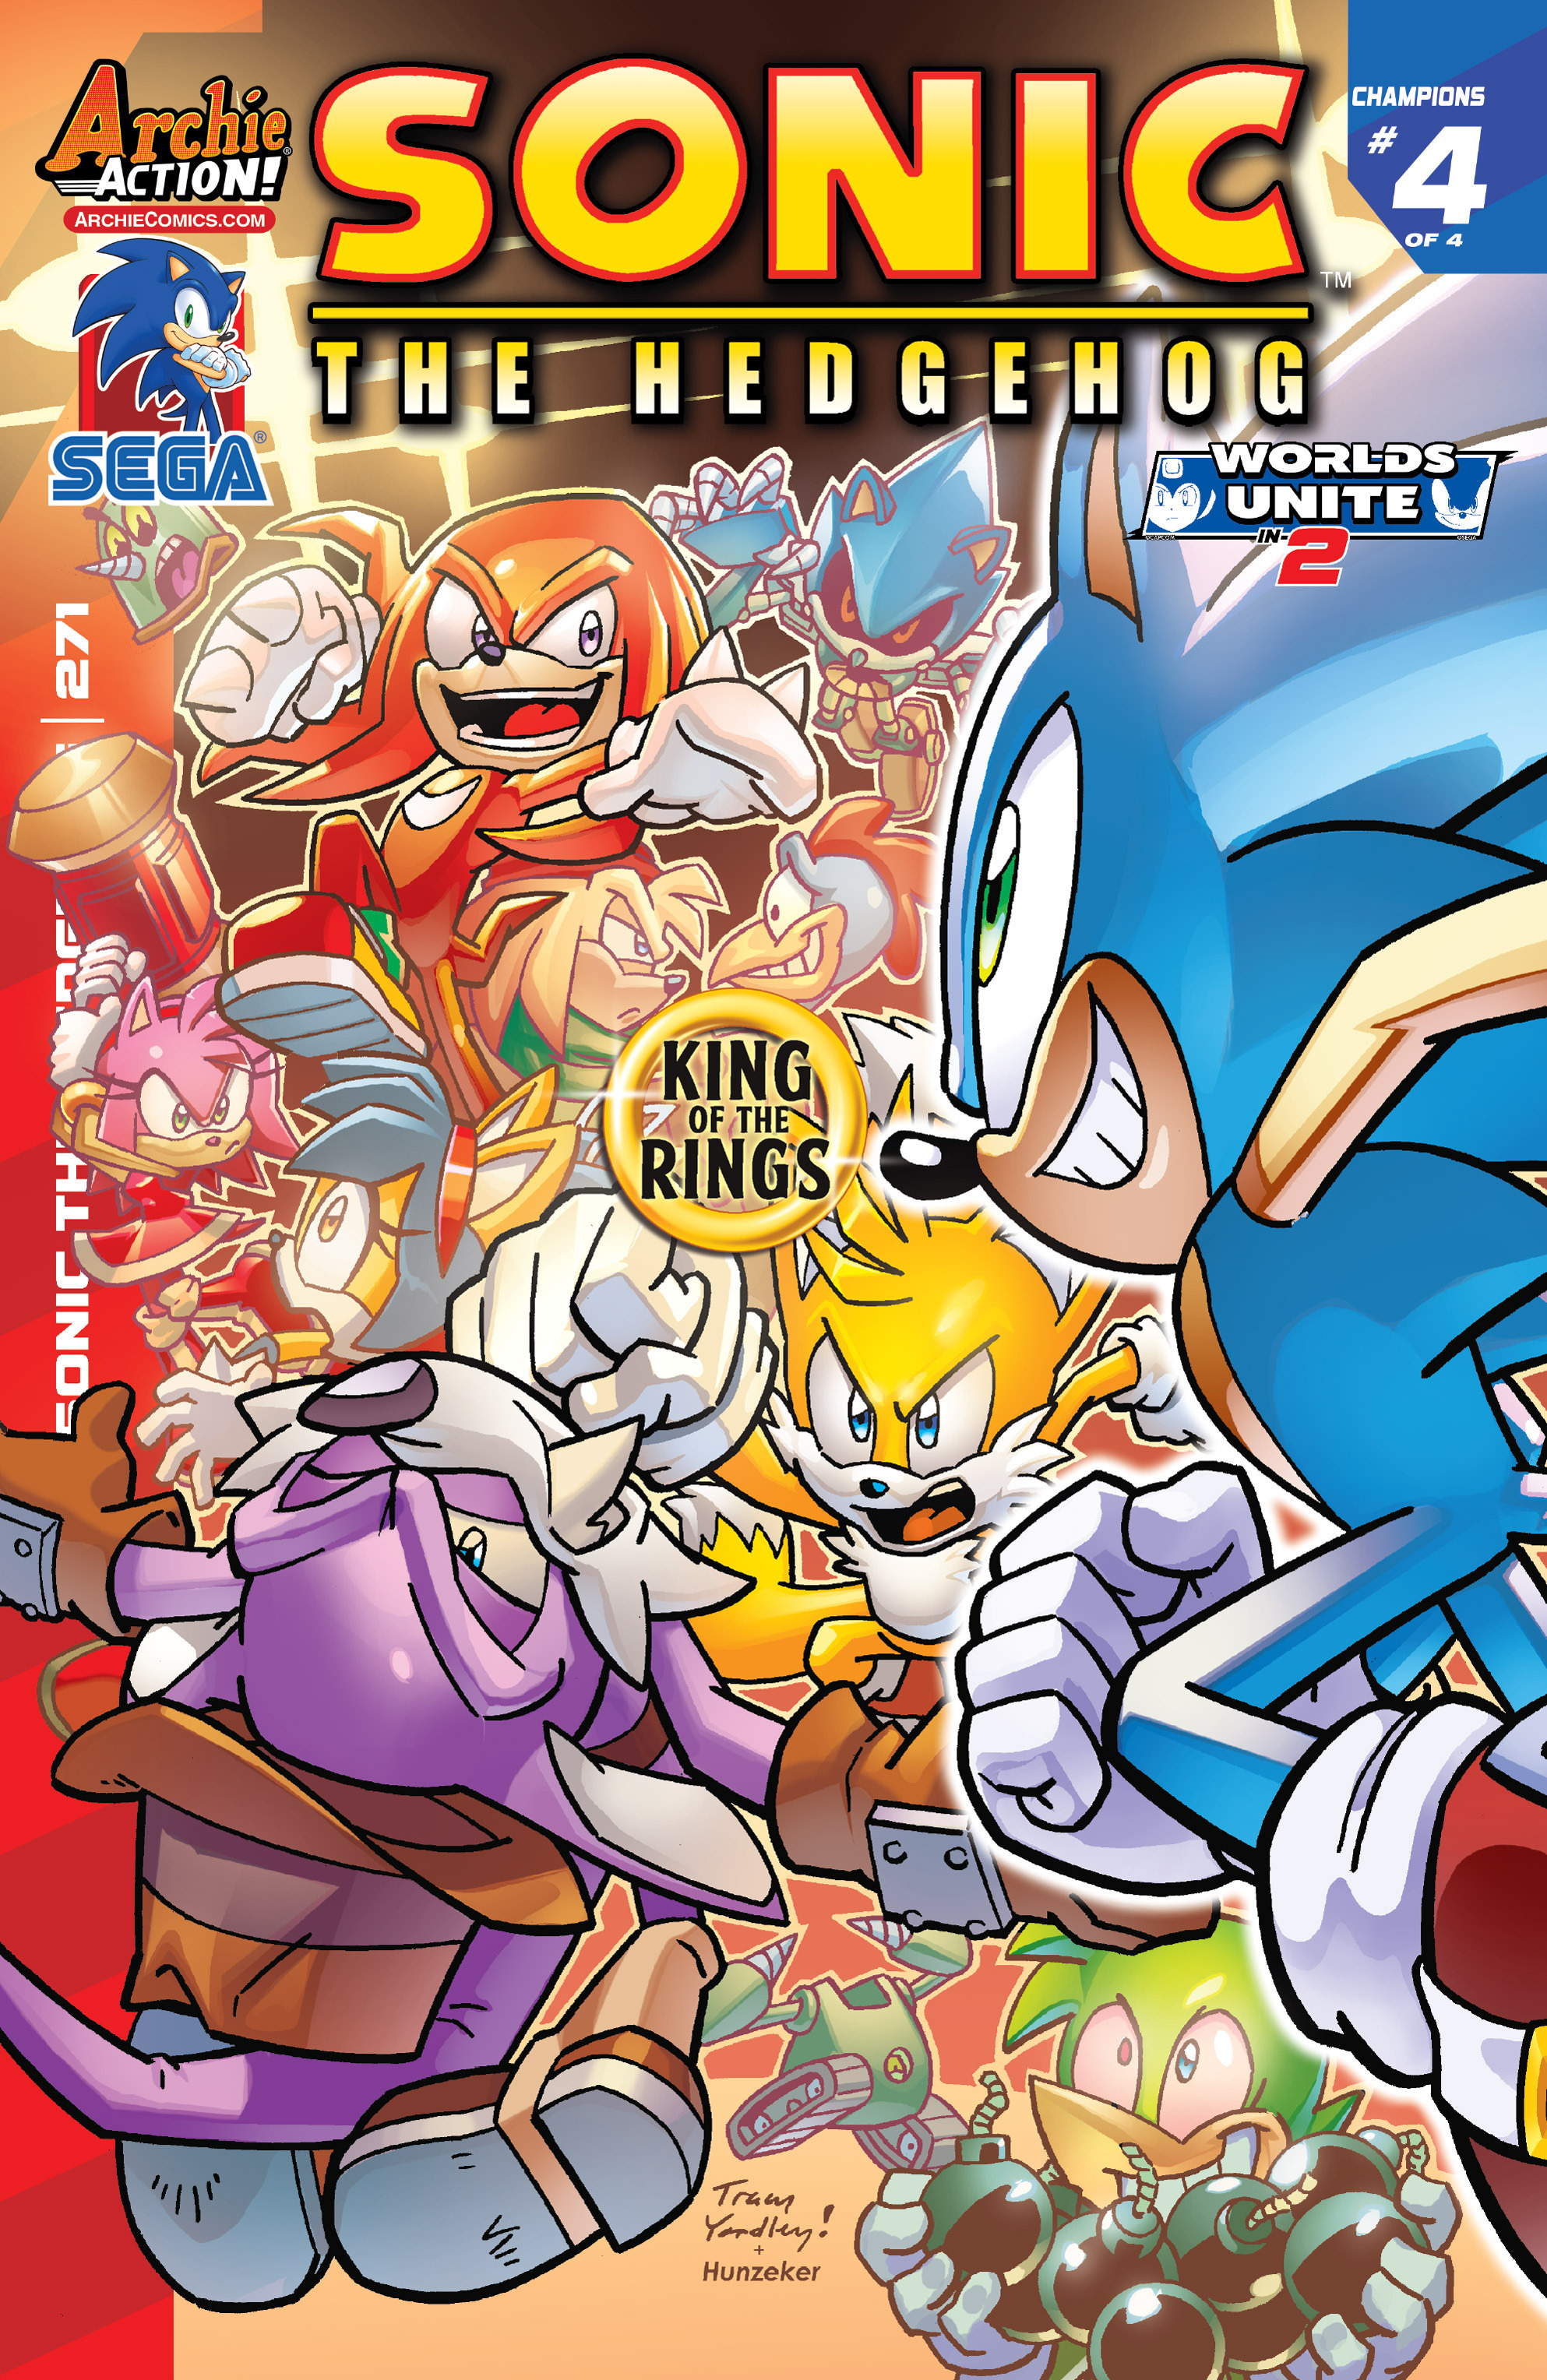 archie sonic the hedgehog issue 271 sonic news network fandom